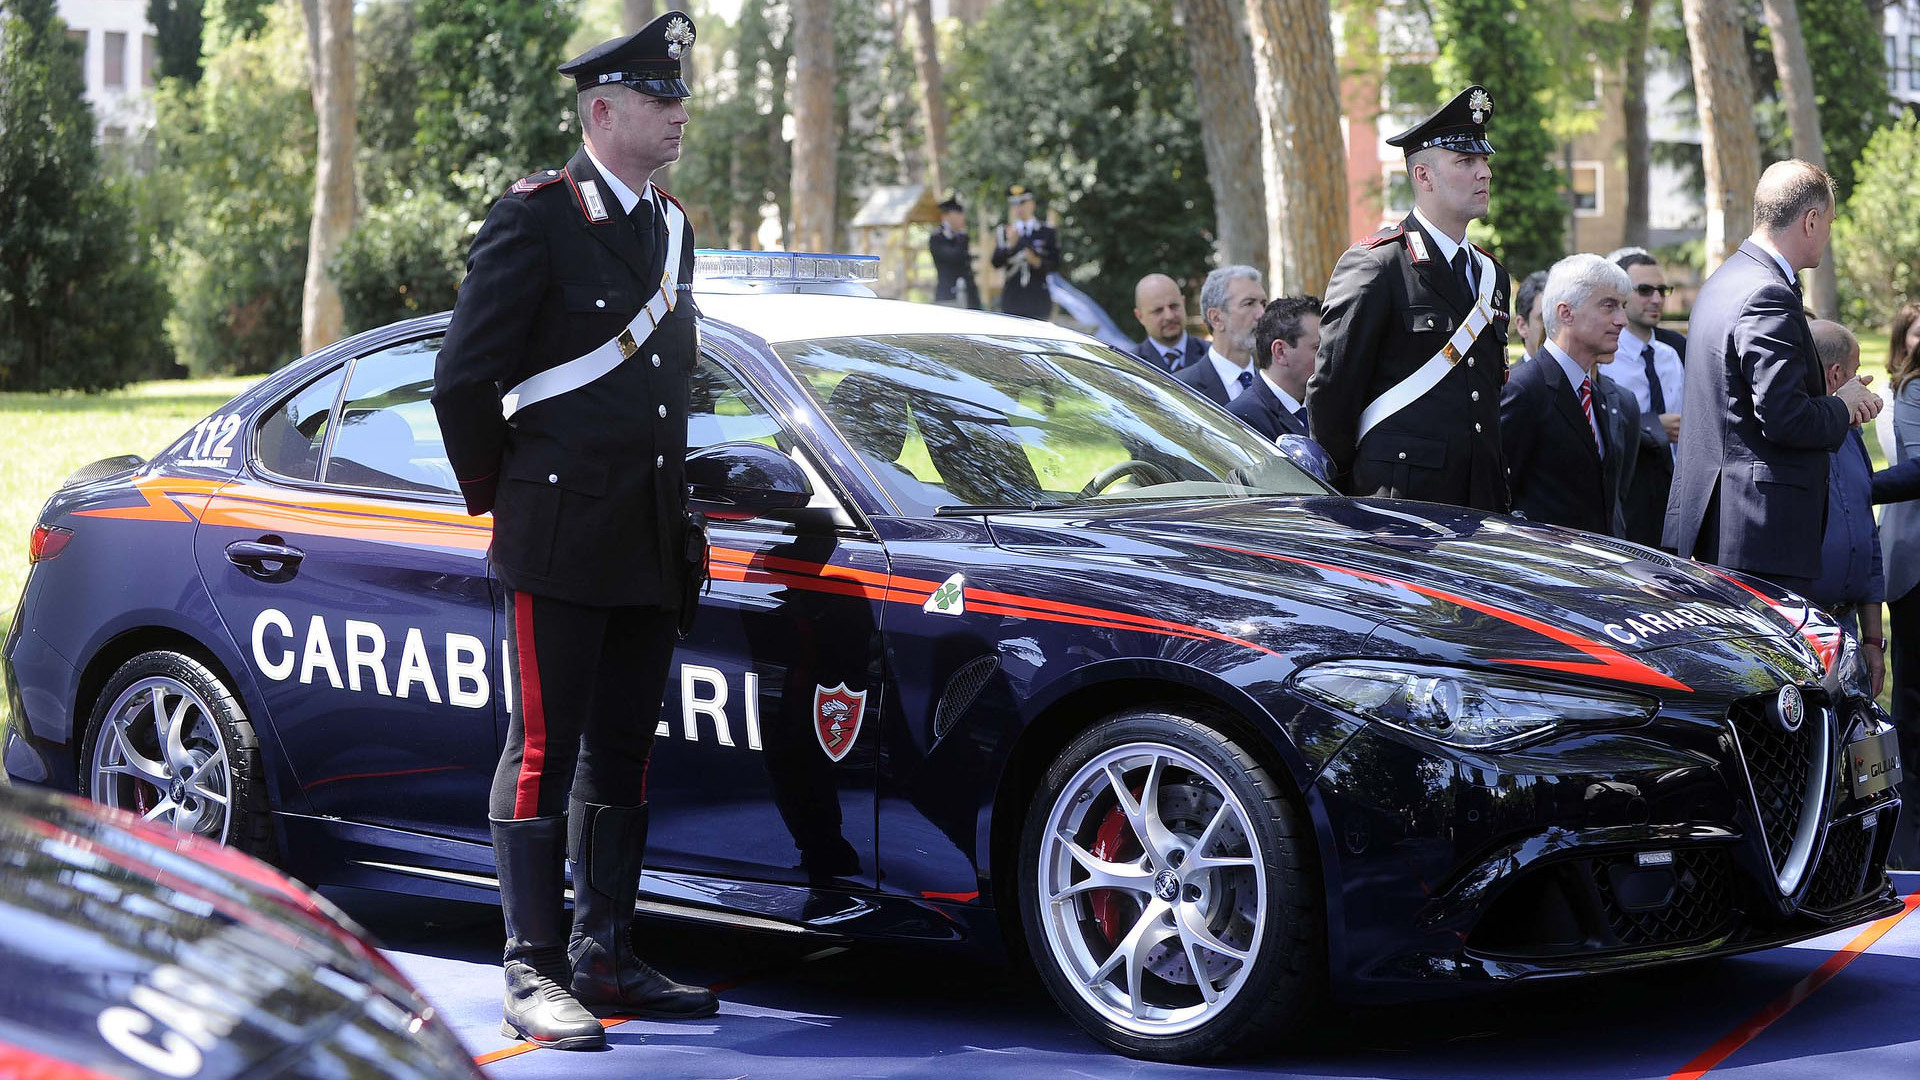 Alfa Romeo Giulia Quadrifoglio Enters Service With The Carabinieri Repair Manual